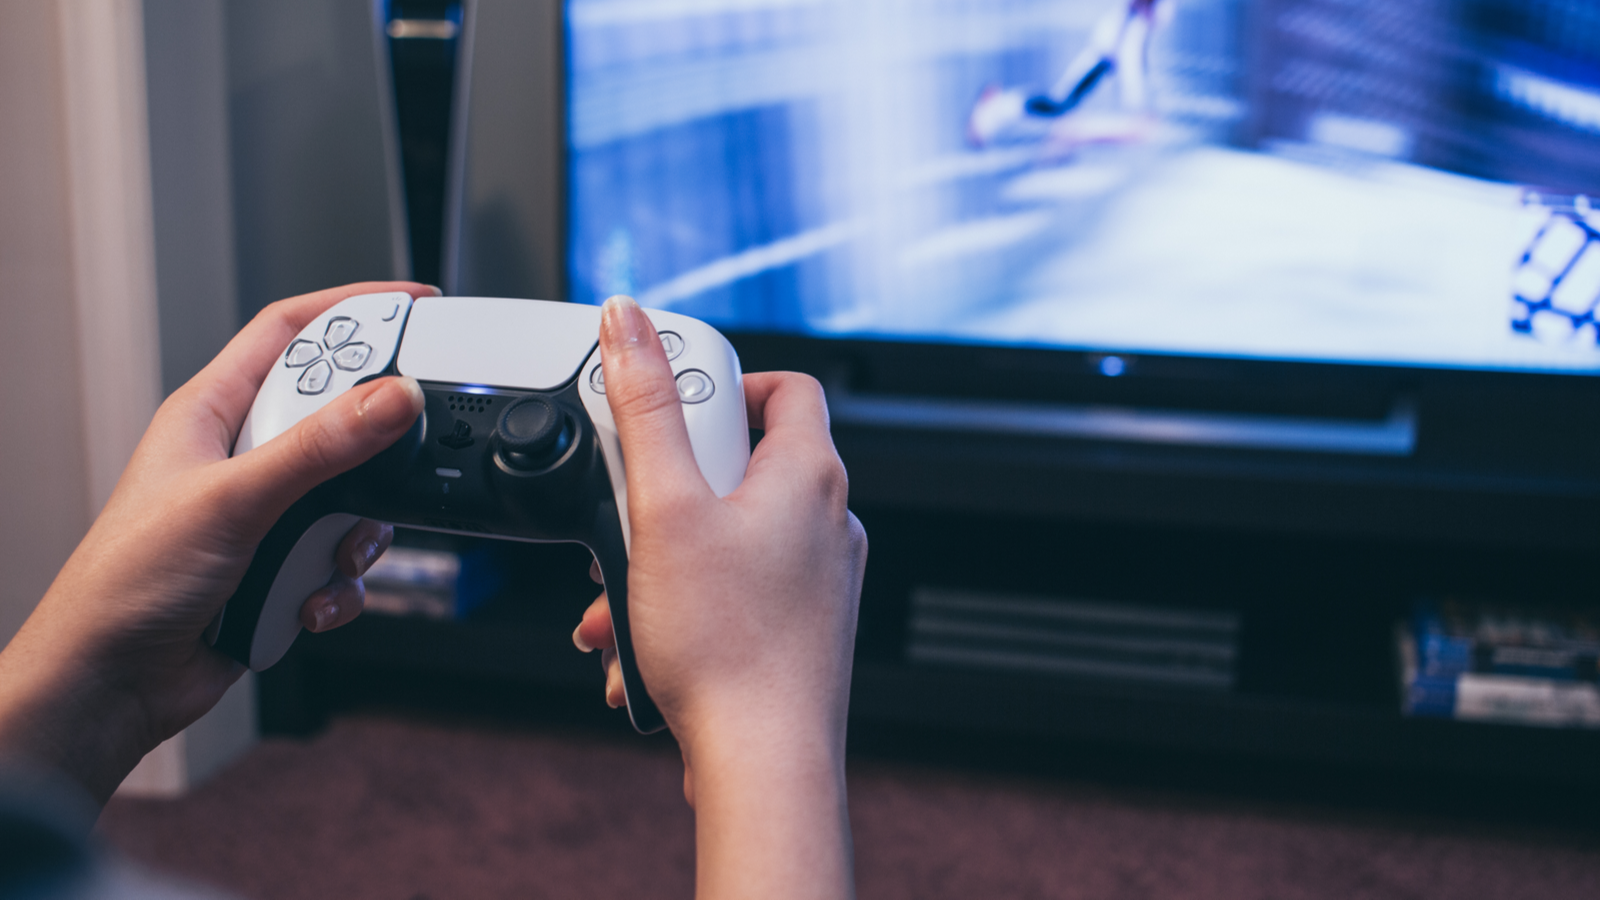 Person holding the PlayStation 5 DualSense controller playing a game on a large TV